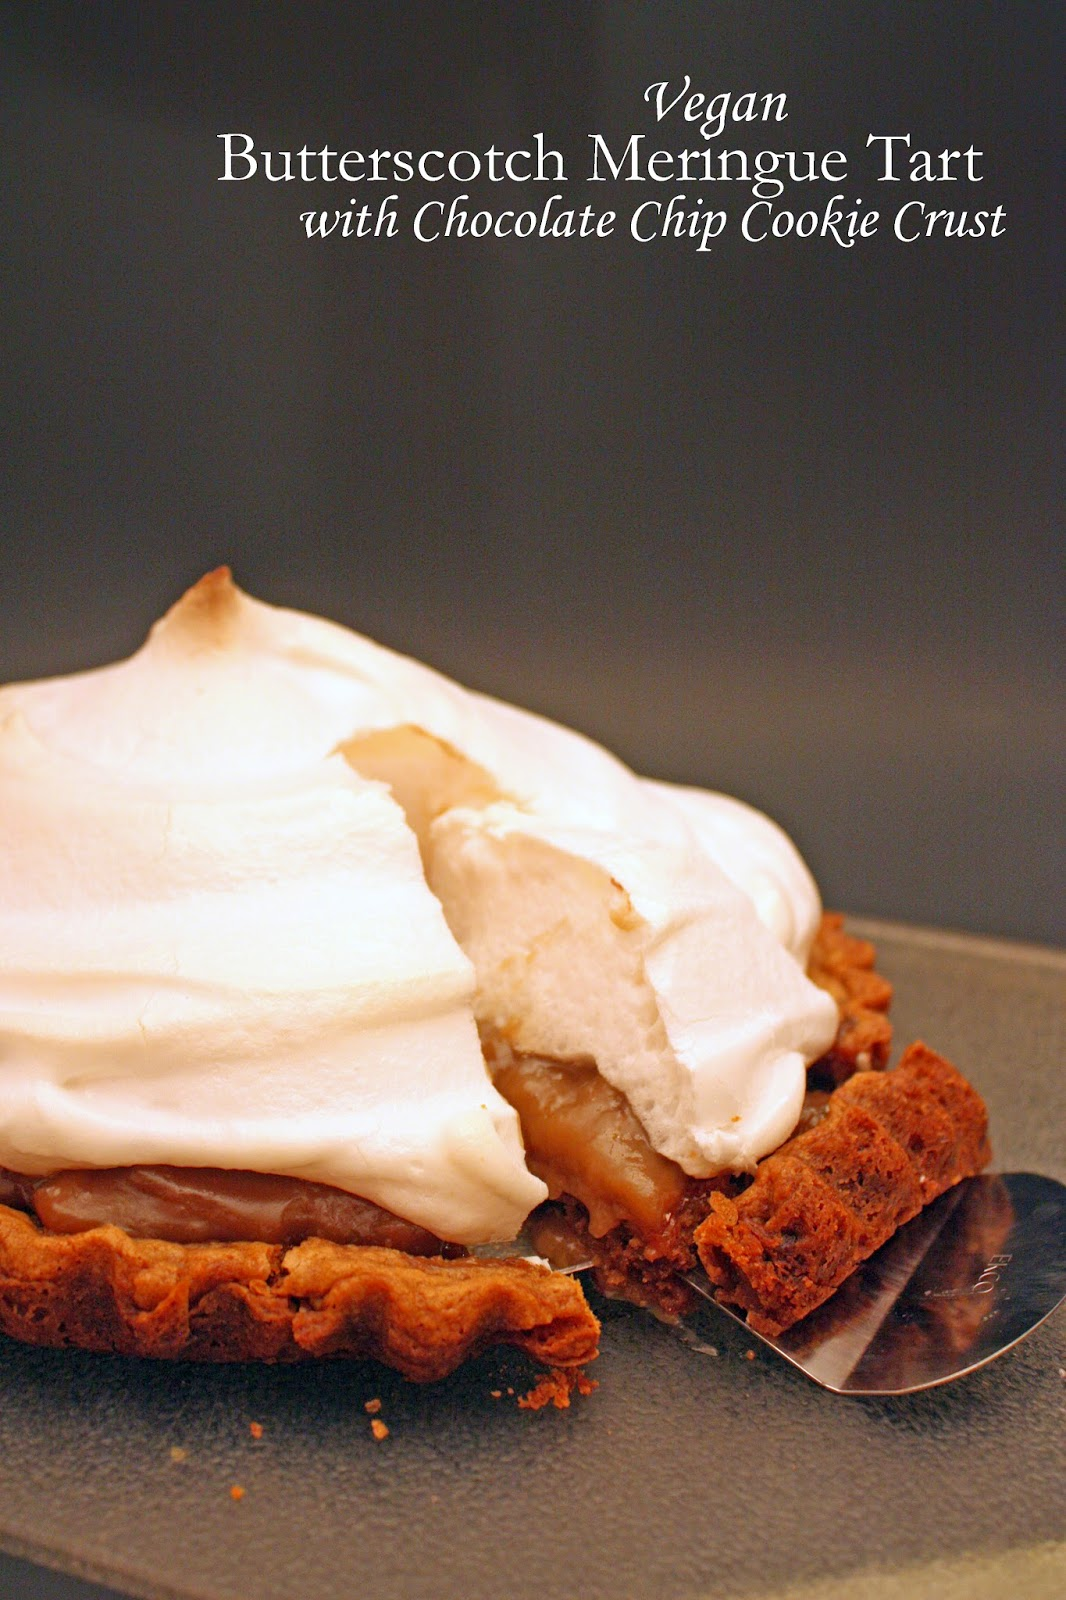 vegan butterscotch meringue tart with chocolate chip cookie crust